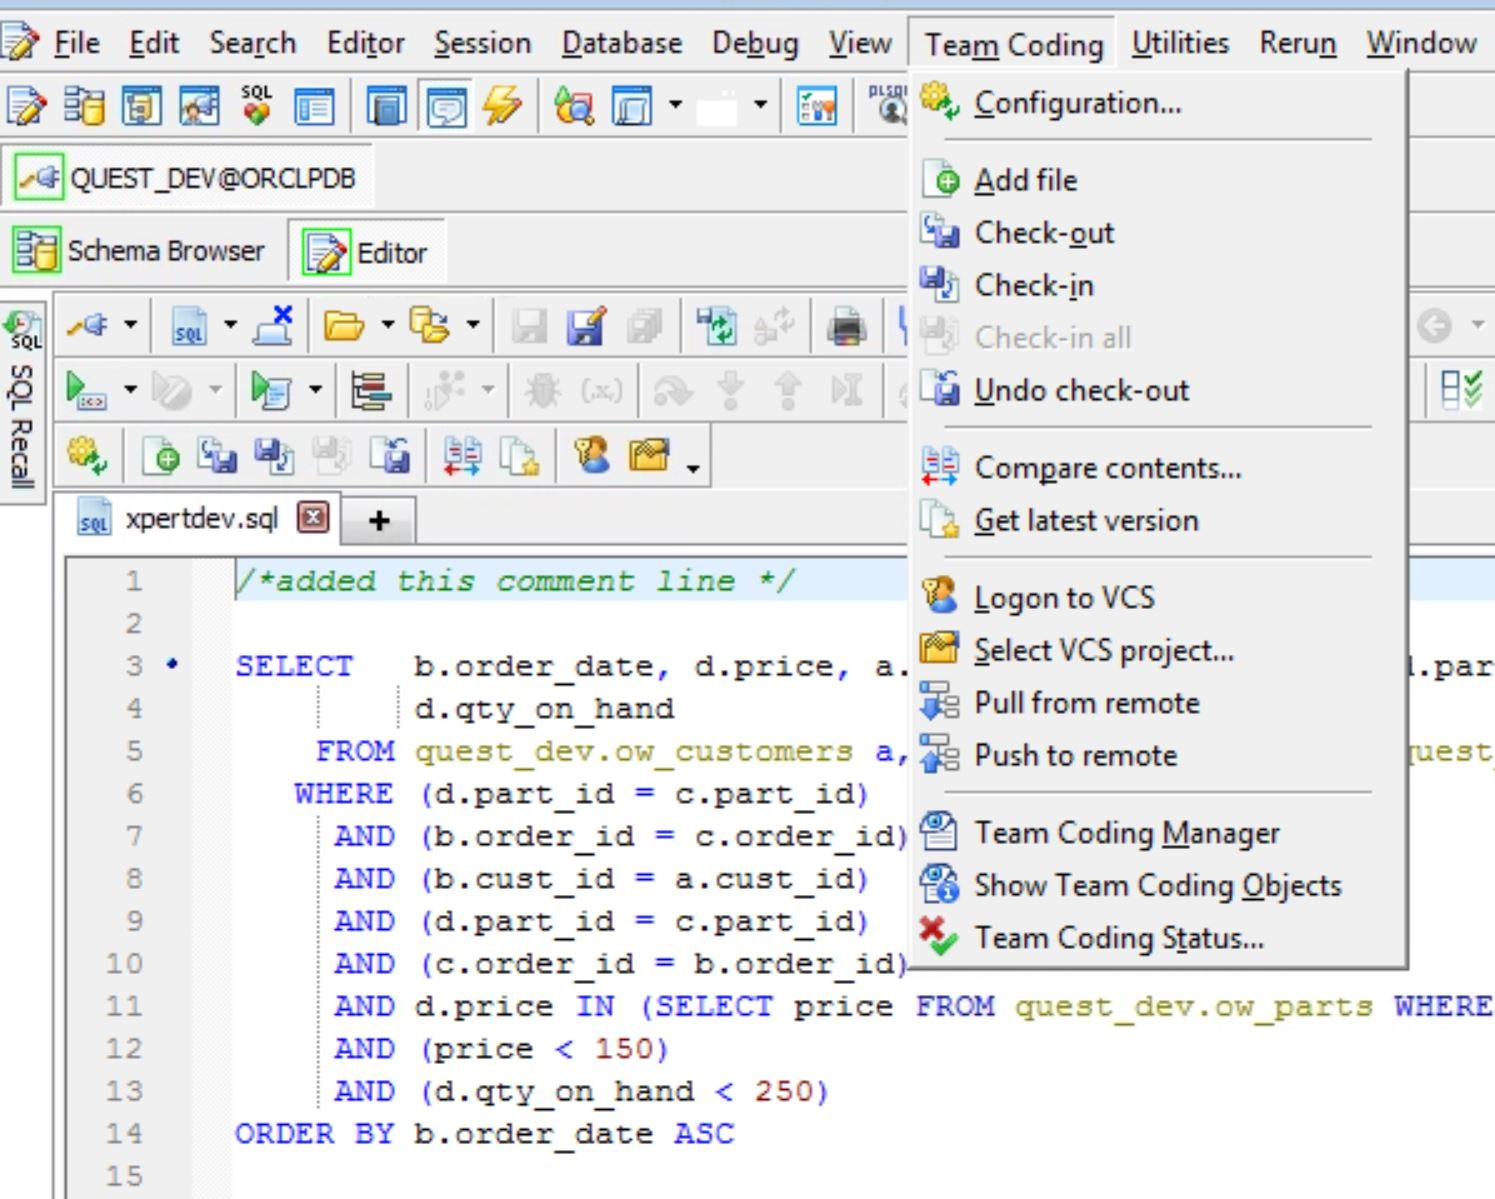 Screen shot of Toad for Oracle Team coding drop down menu